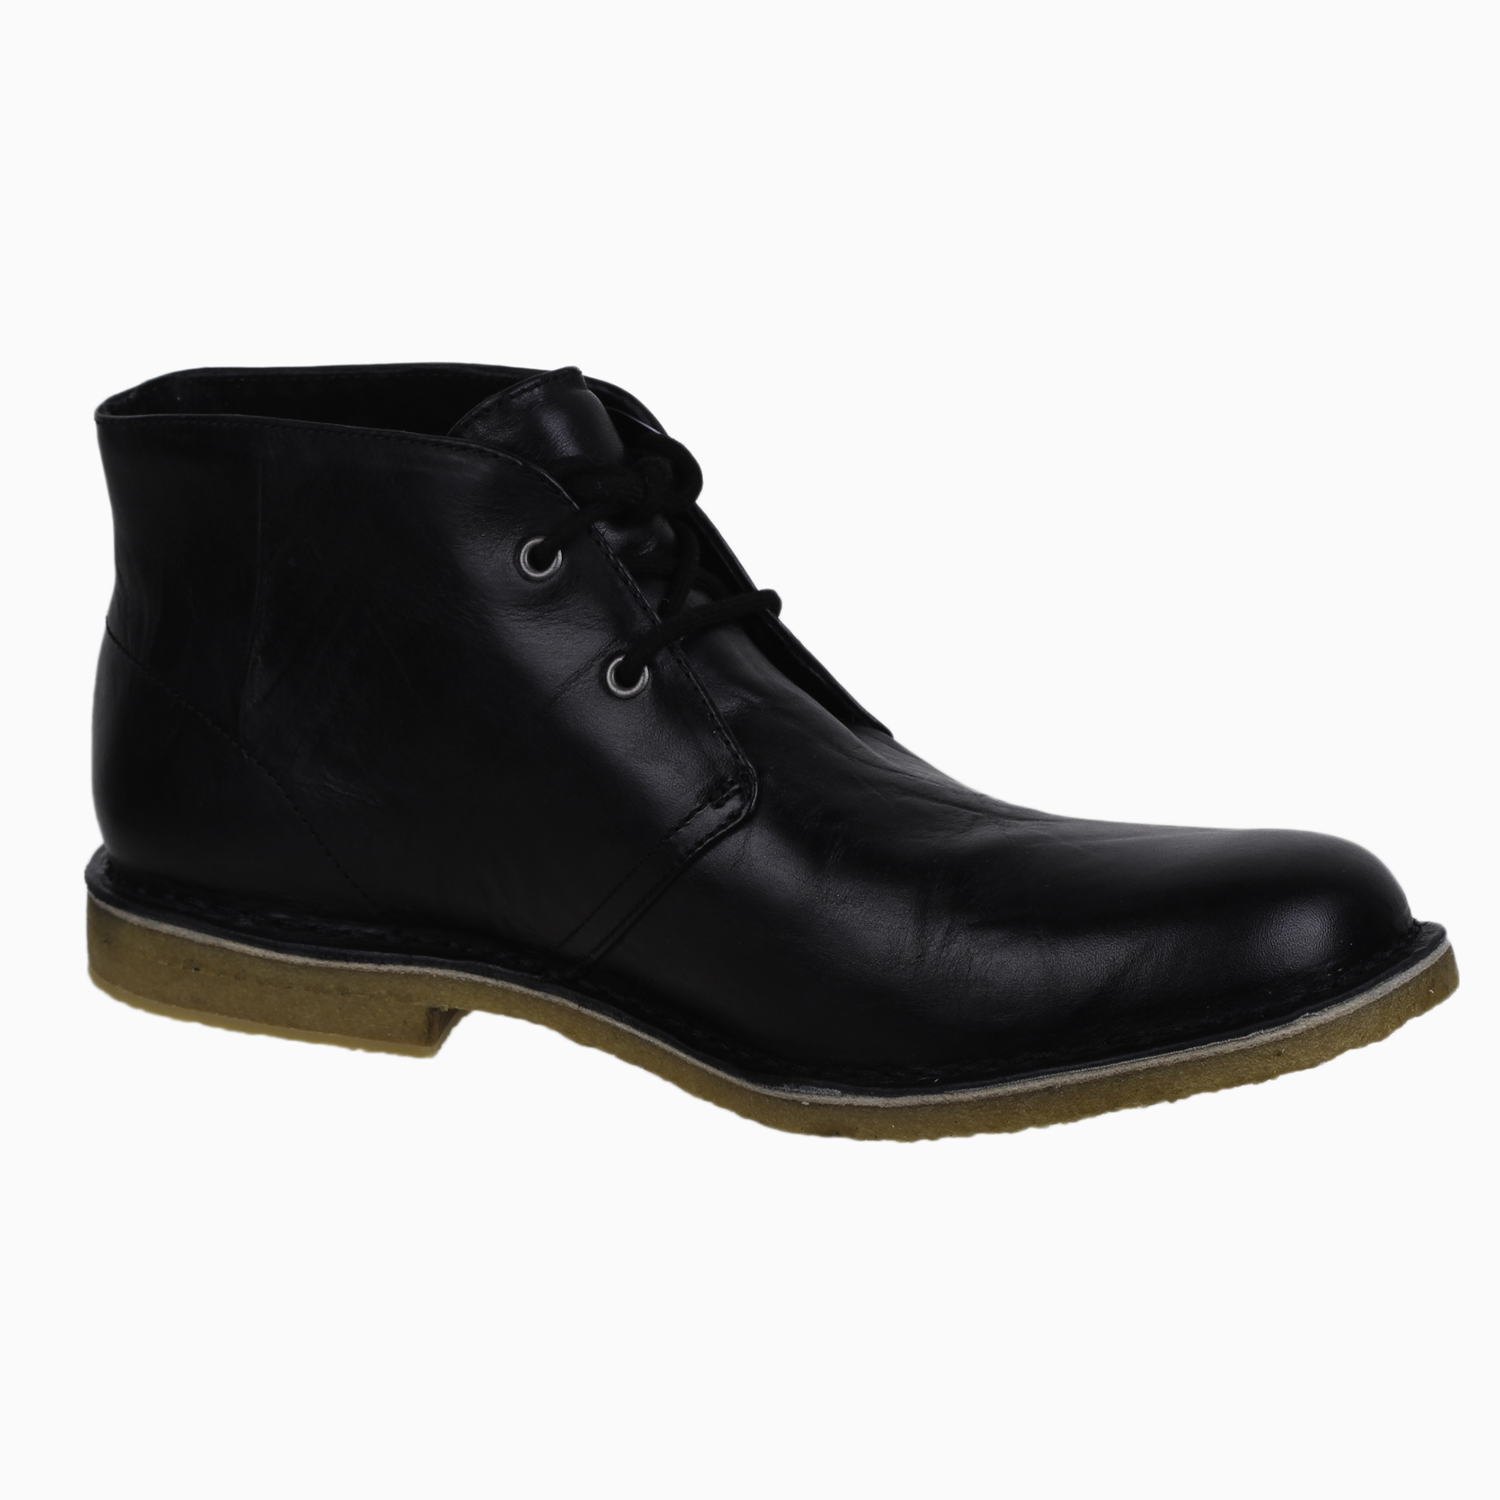 cff33c1df29 Details about UGG Men's Leighton Dress Boot 3275M Shoes Black